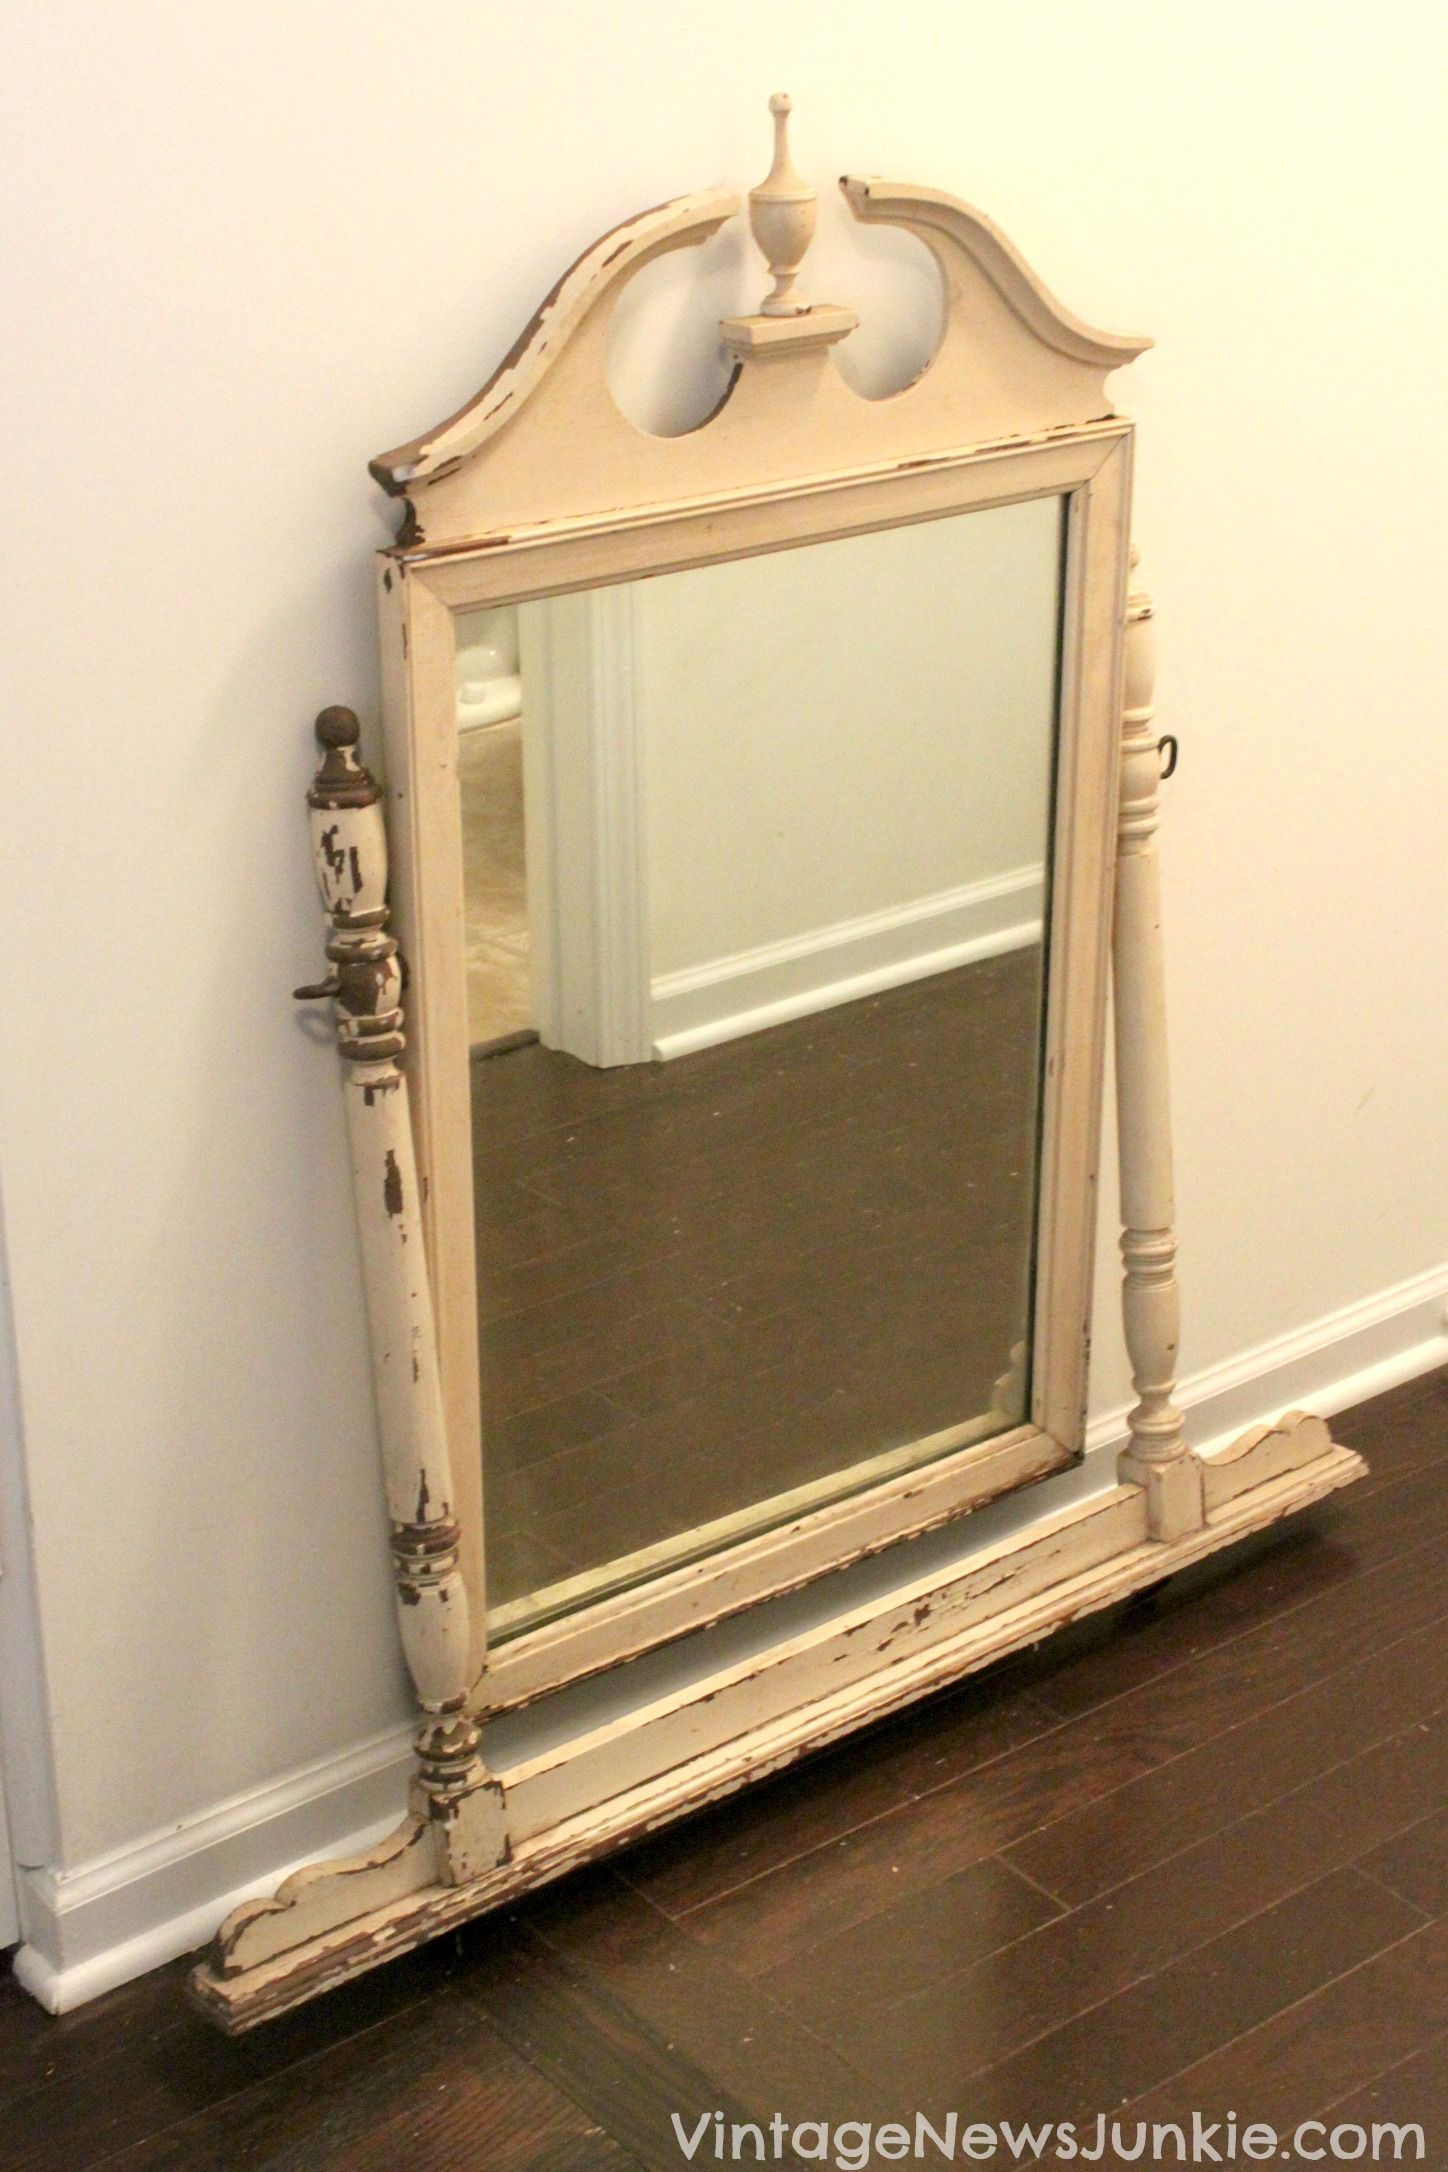 My FREE Upcycled Bathroom Mirror